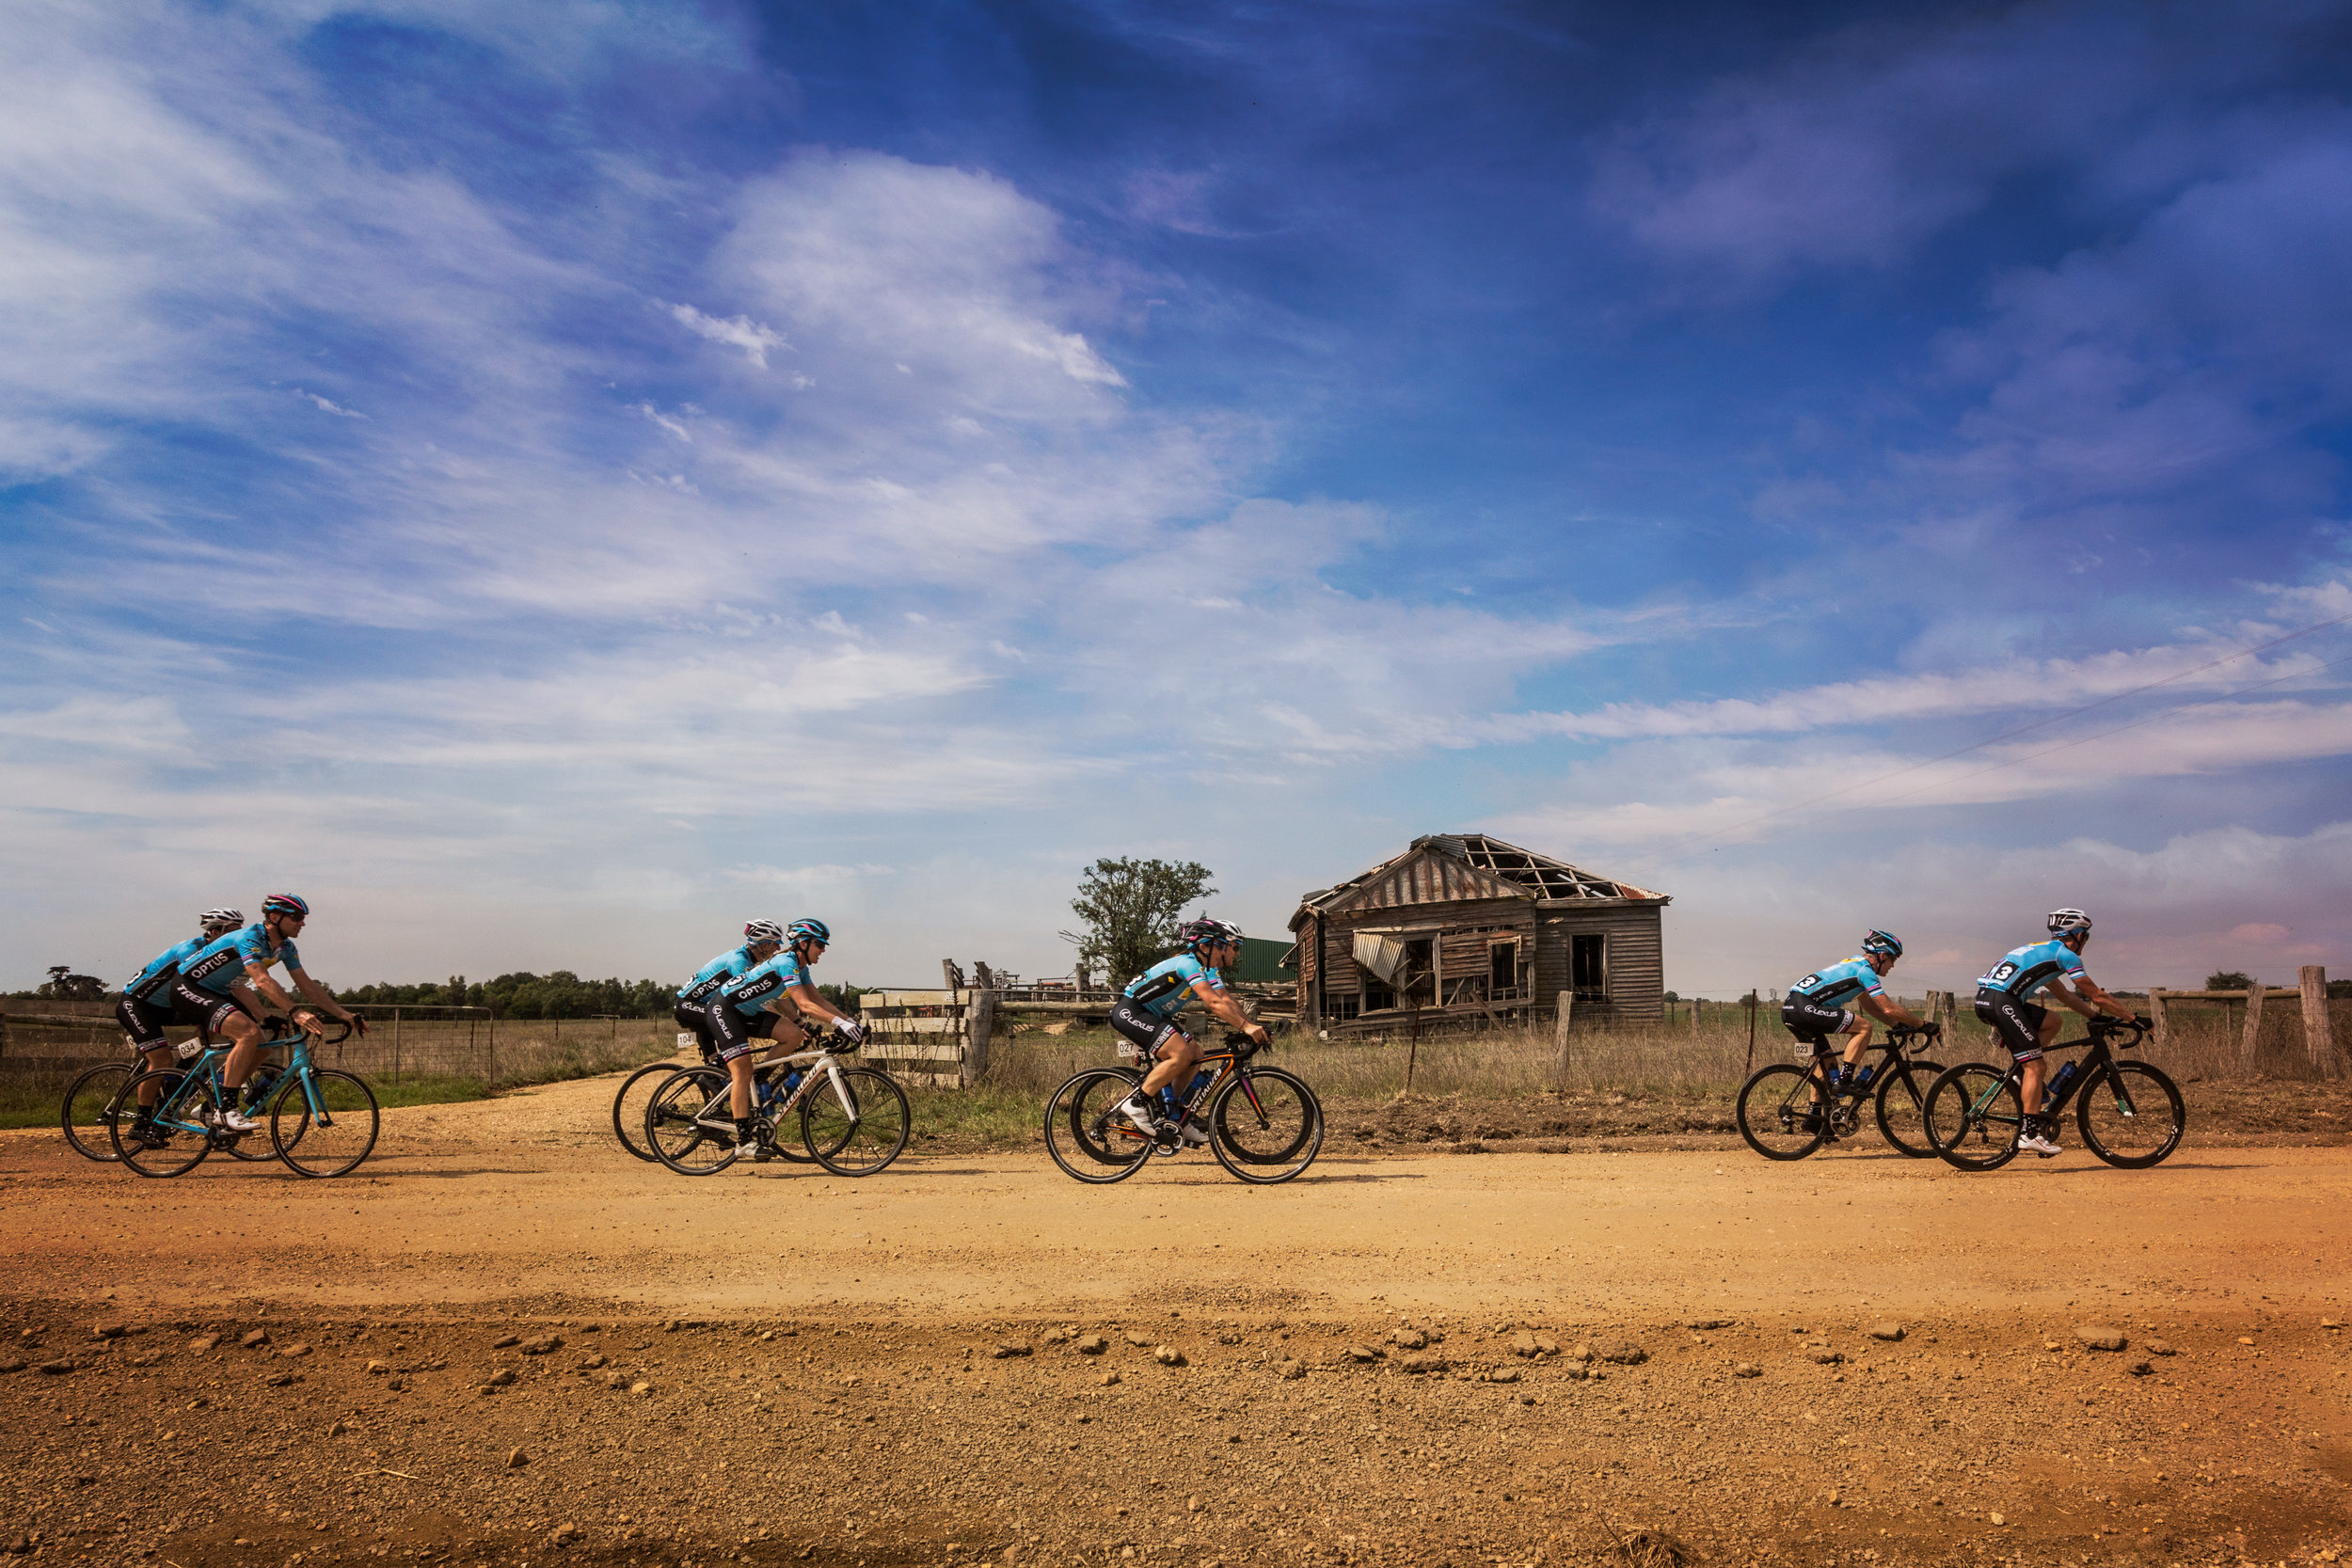 It wouldnt be a Tour without some dirt roads!